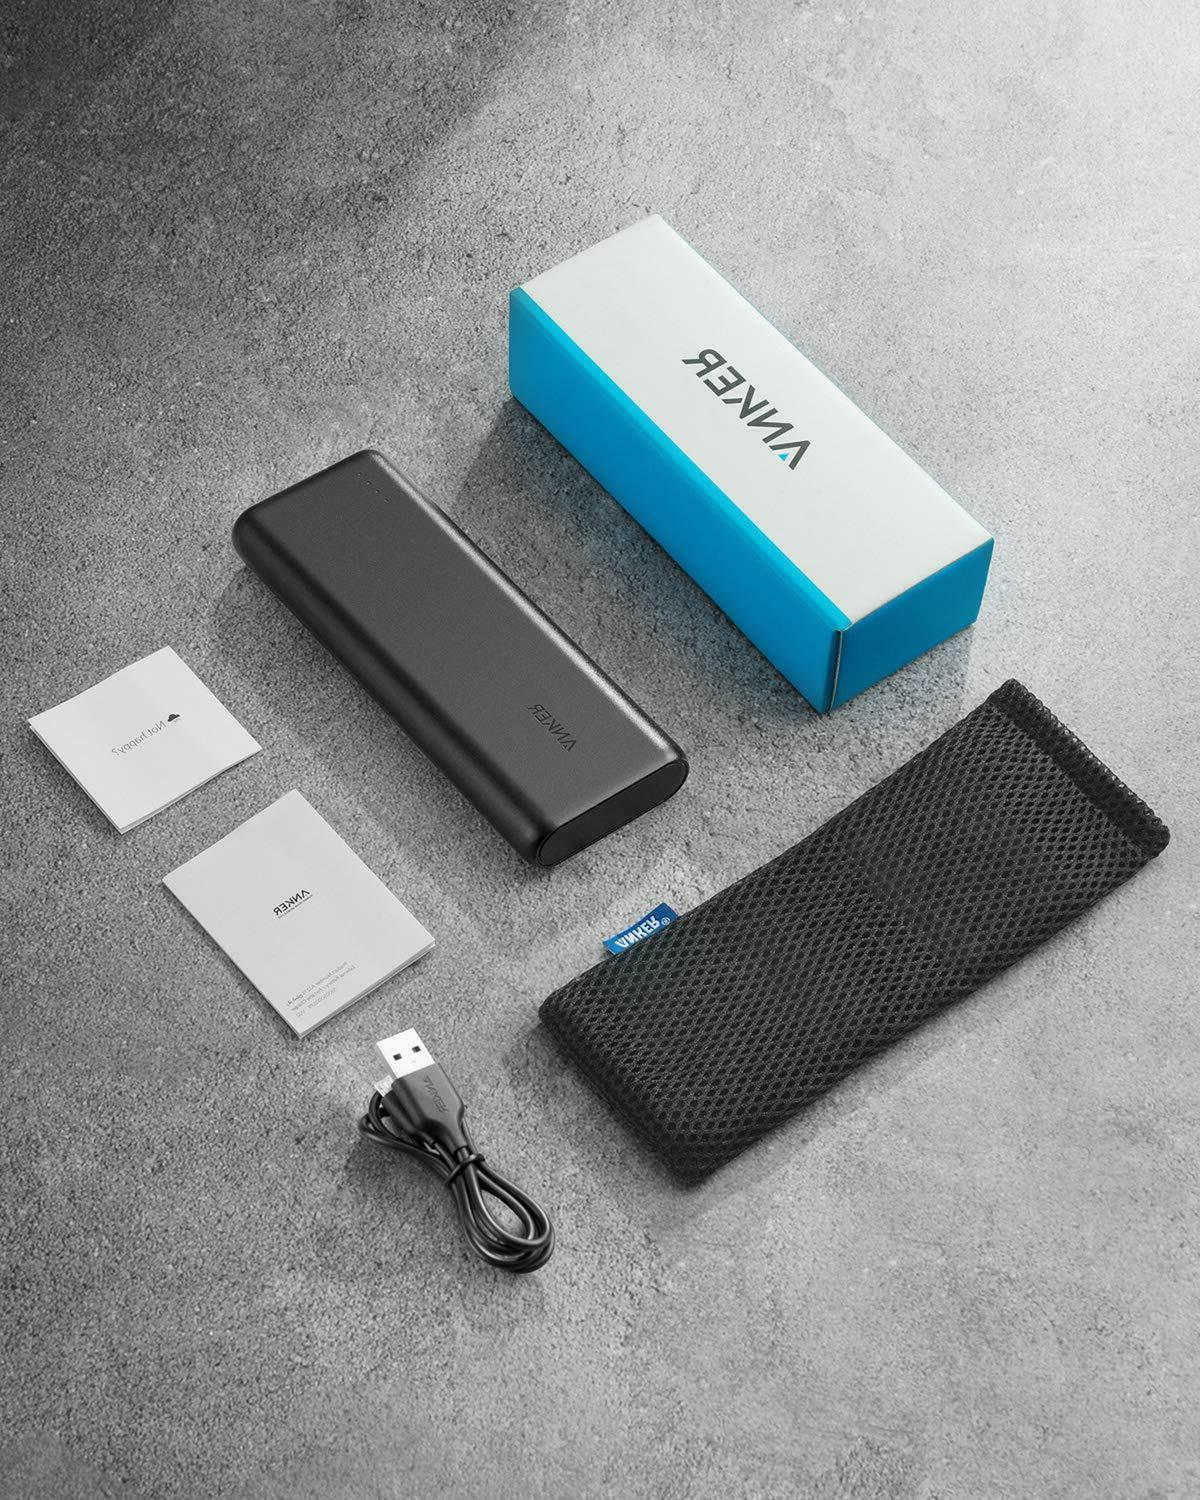 Anker Charger iphone Samsung